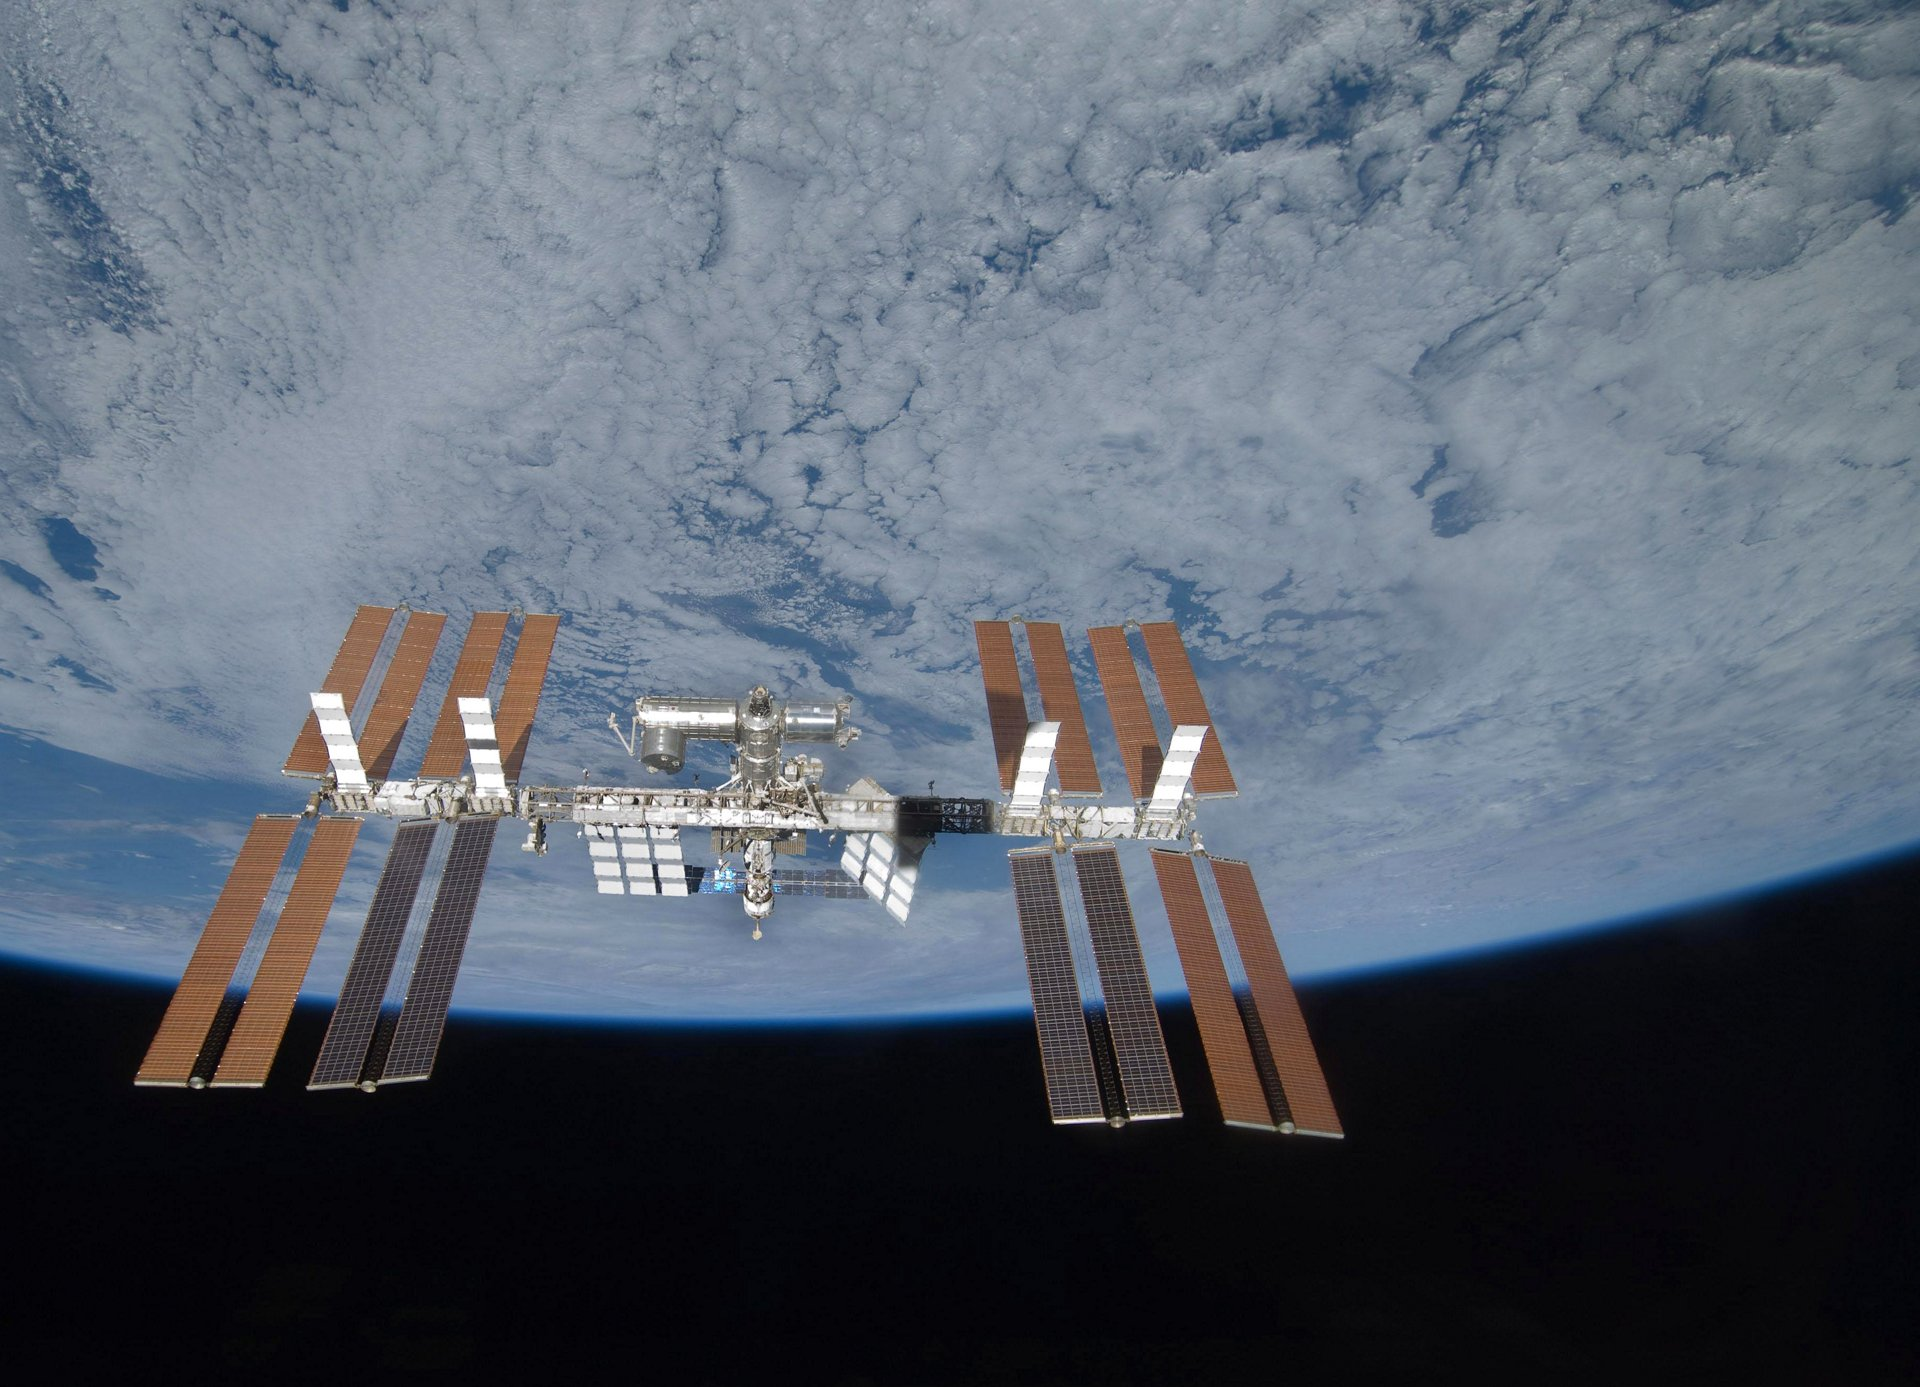 Airbus is a key contributor to the International Space Station, an unprecedented endeavor involving 10 European countries in partnership with the United States, Japan, Canada and Russia